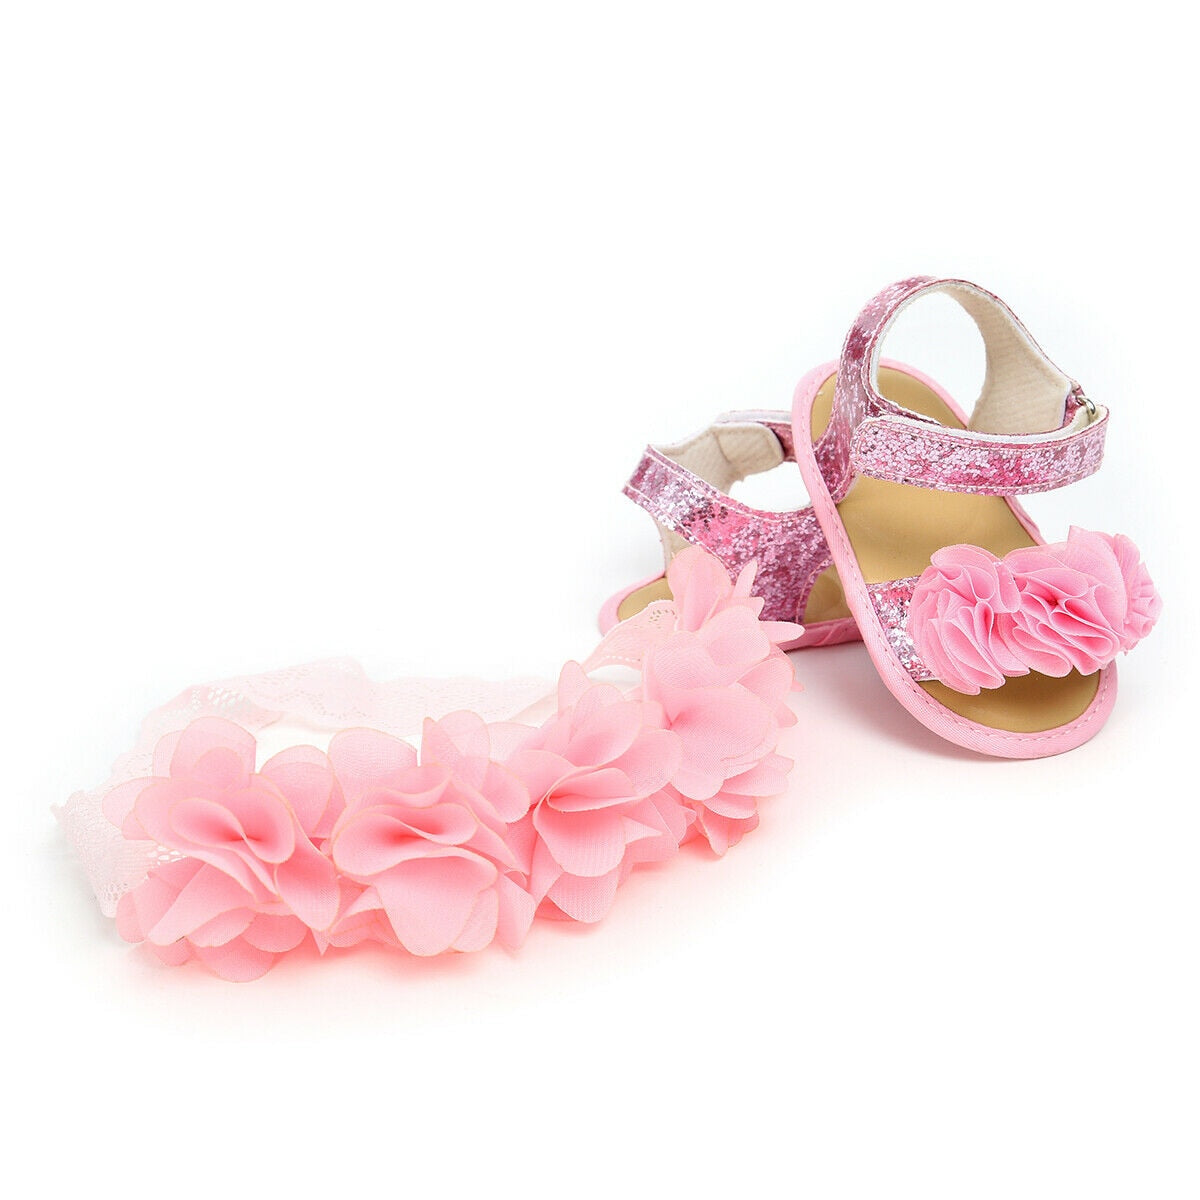 lovebabymammy.com 2020 Baby Summer Clothing Newborn Kid Baby Girl Flower Sandals Shoes Soft Sole Hook Casual Summer Shoes +Headband 2Pcs Solid Set